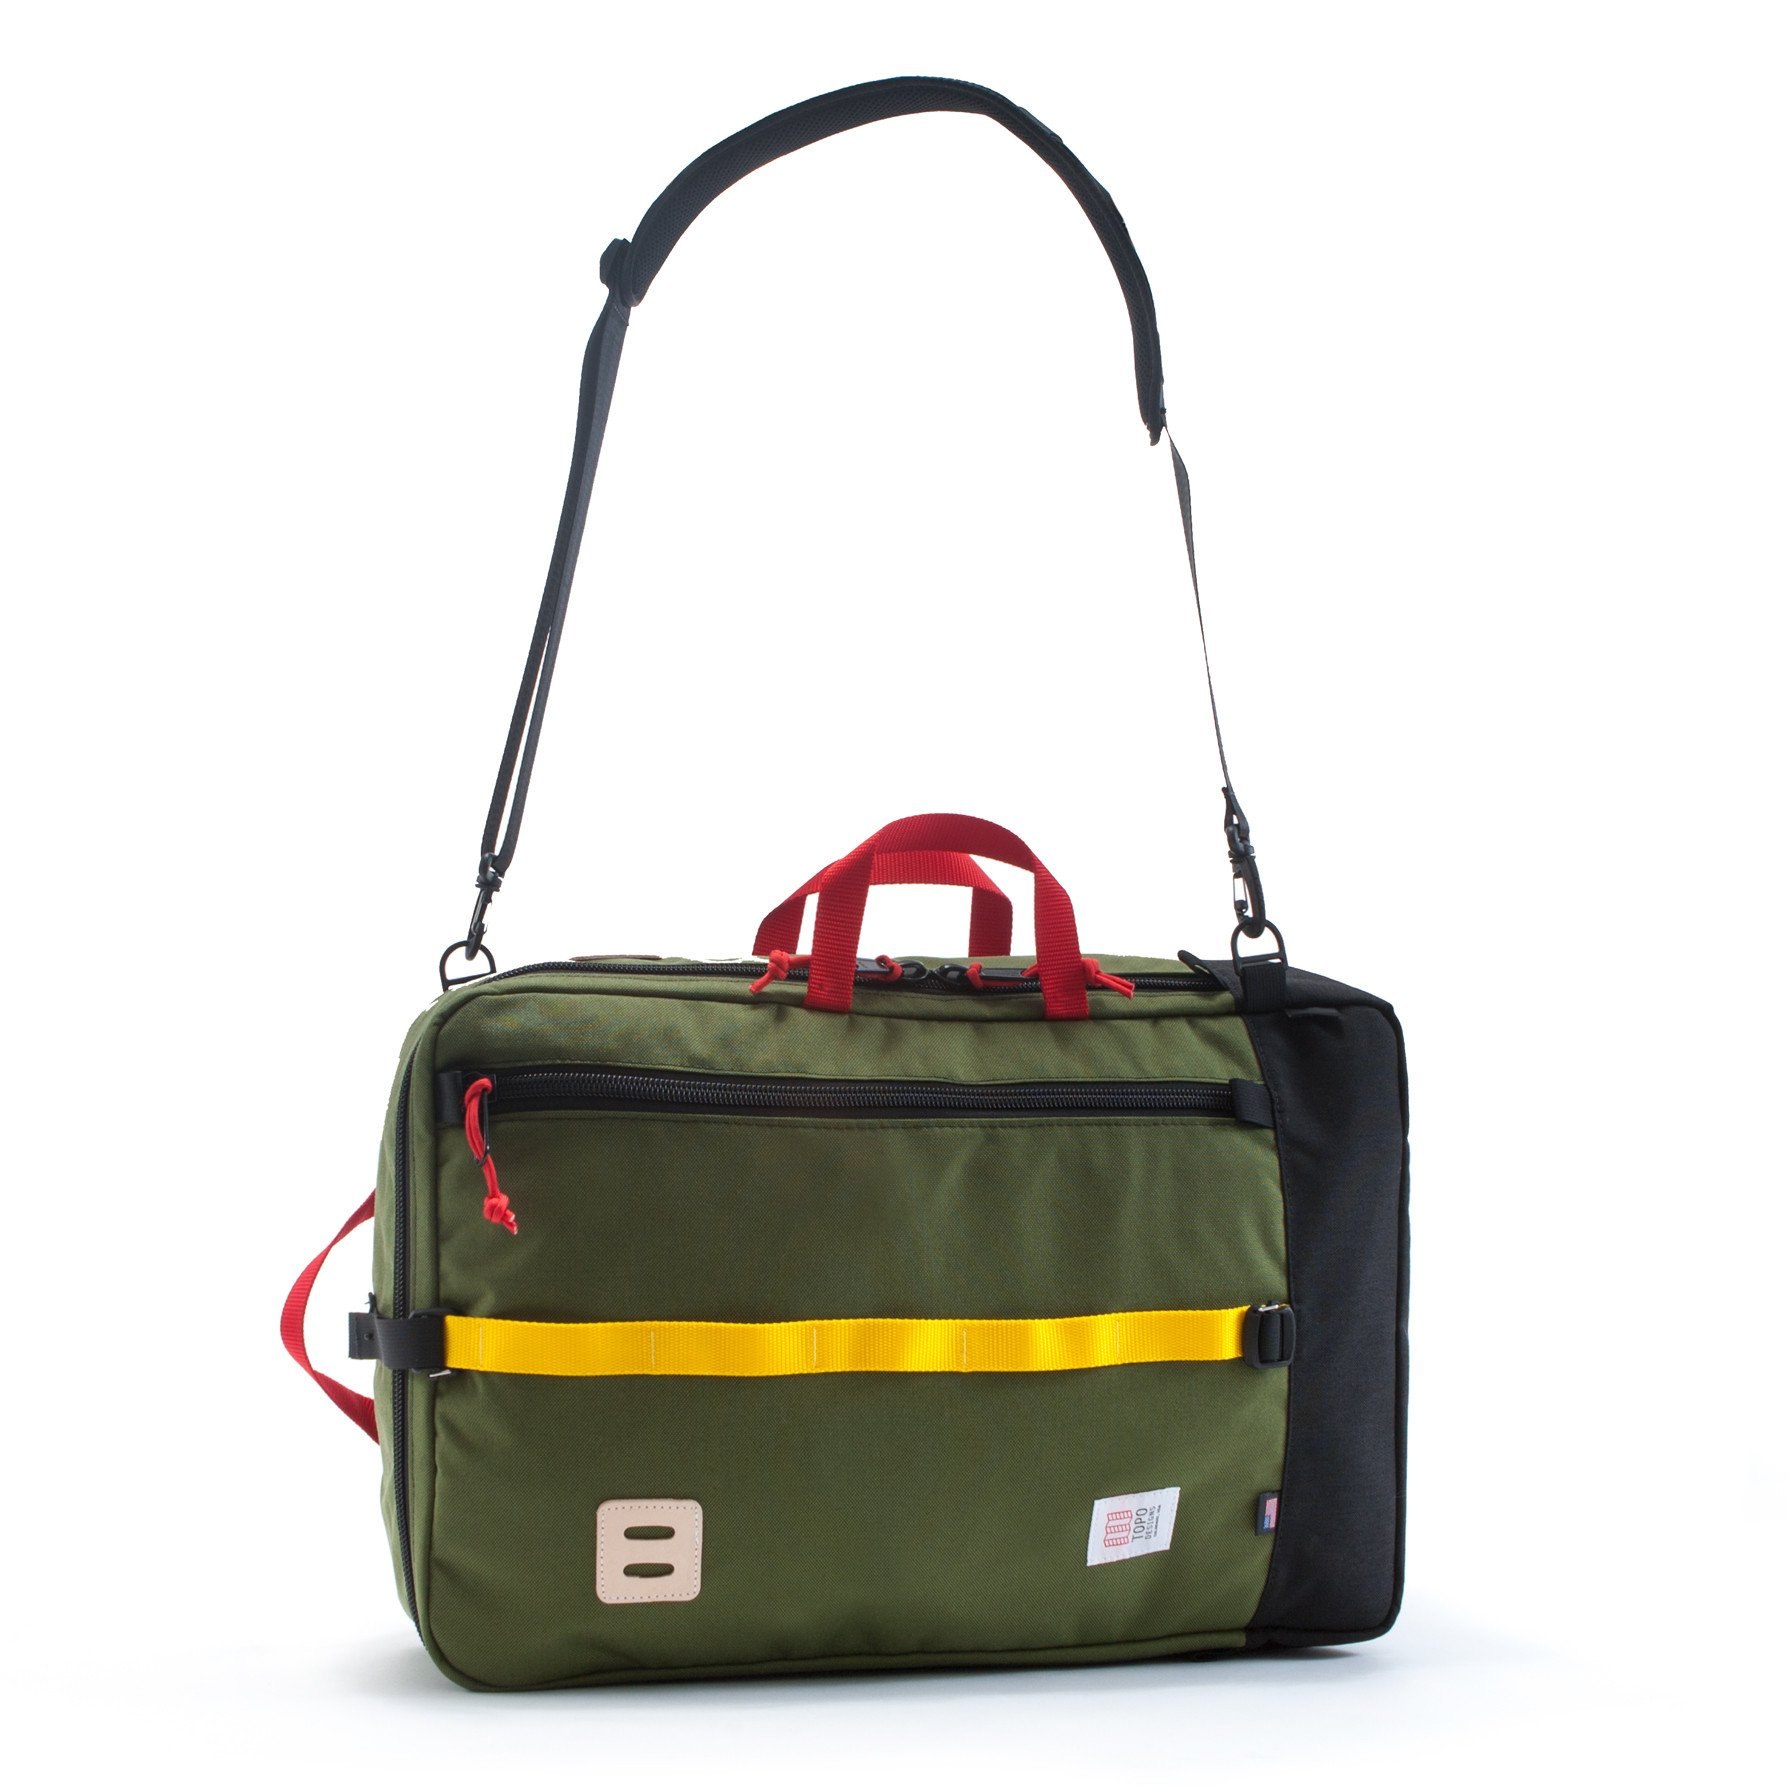 travel bags travel bag | topo designs - made in colorado, usa | topo designs nubxvrq